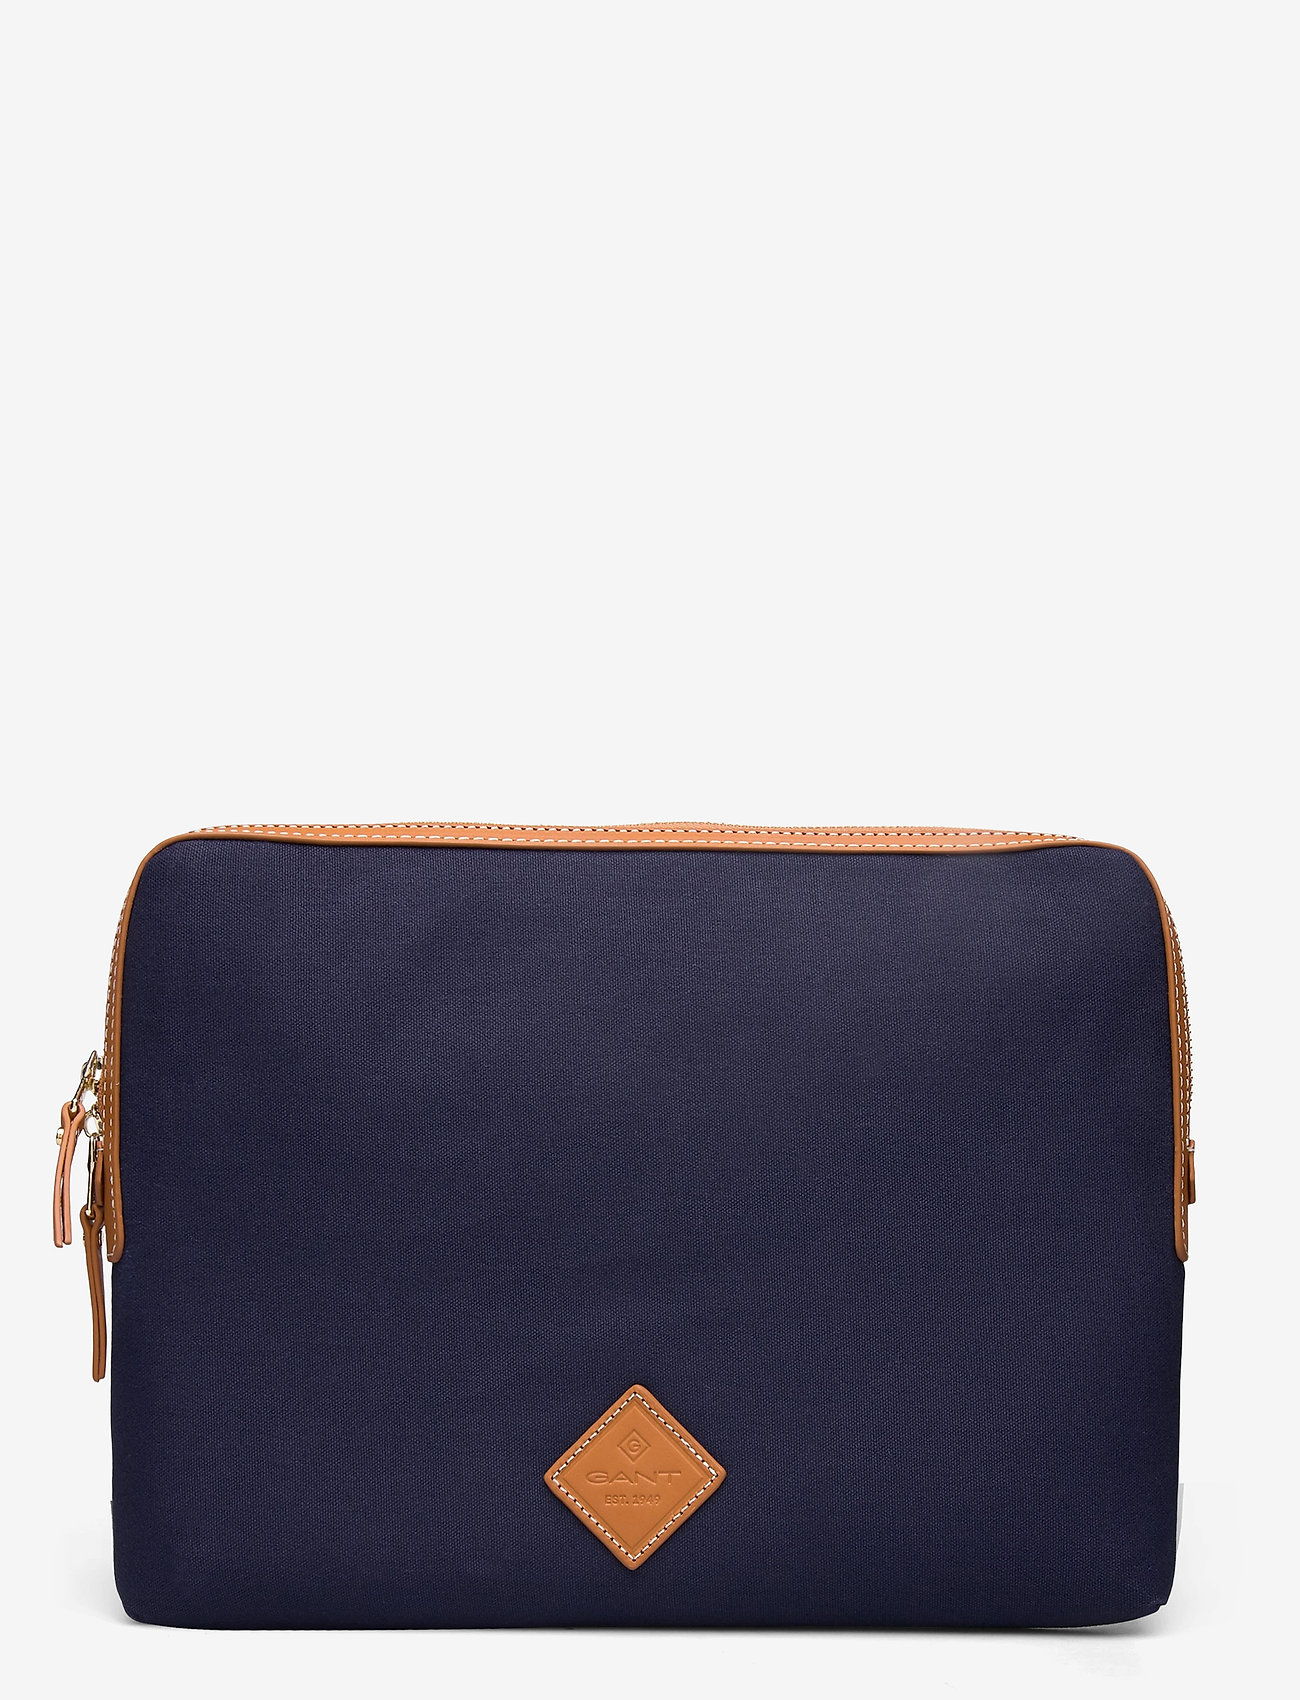 D1. HOUSE OF GANT LAPTOP SLEEVE